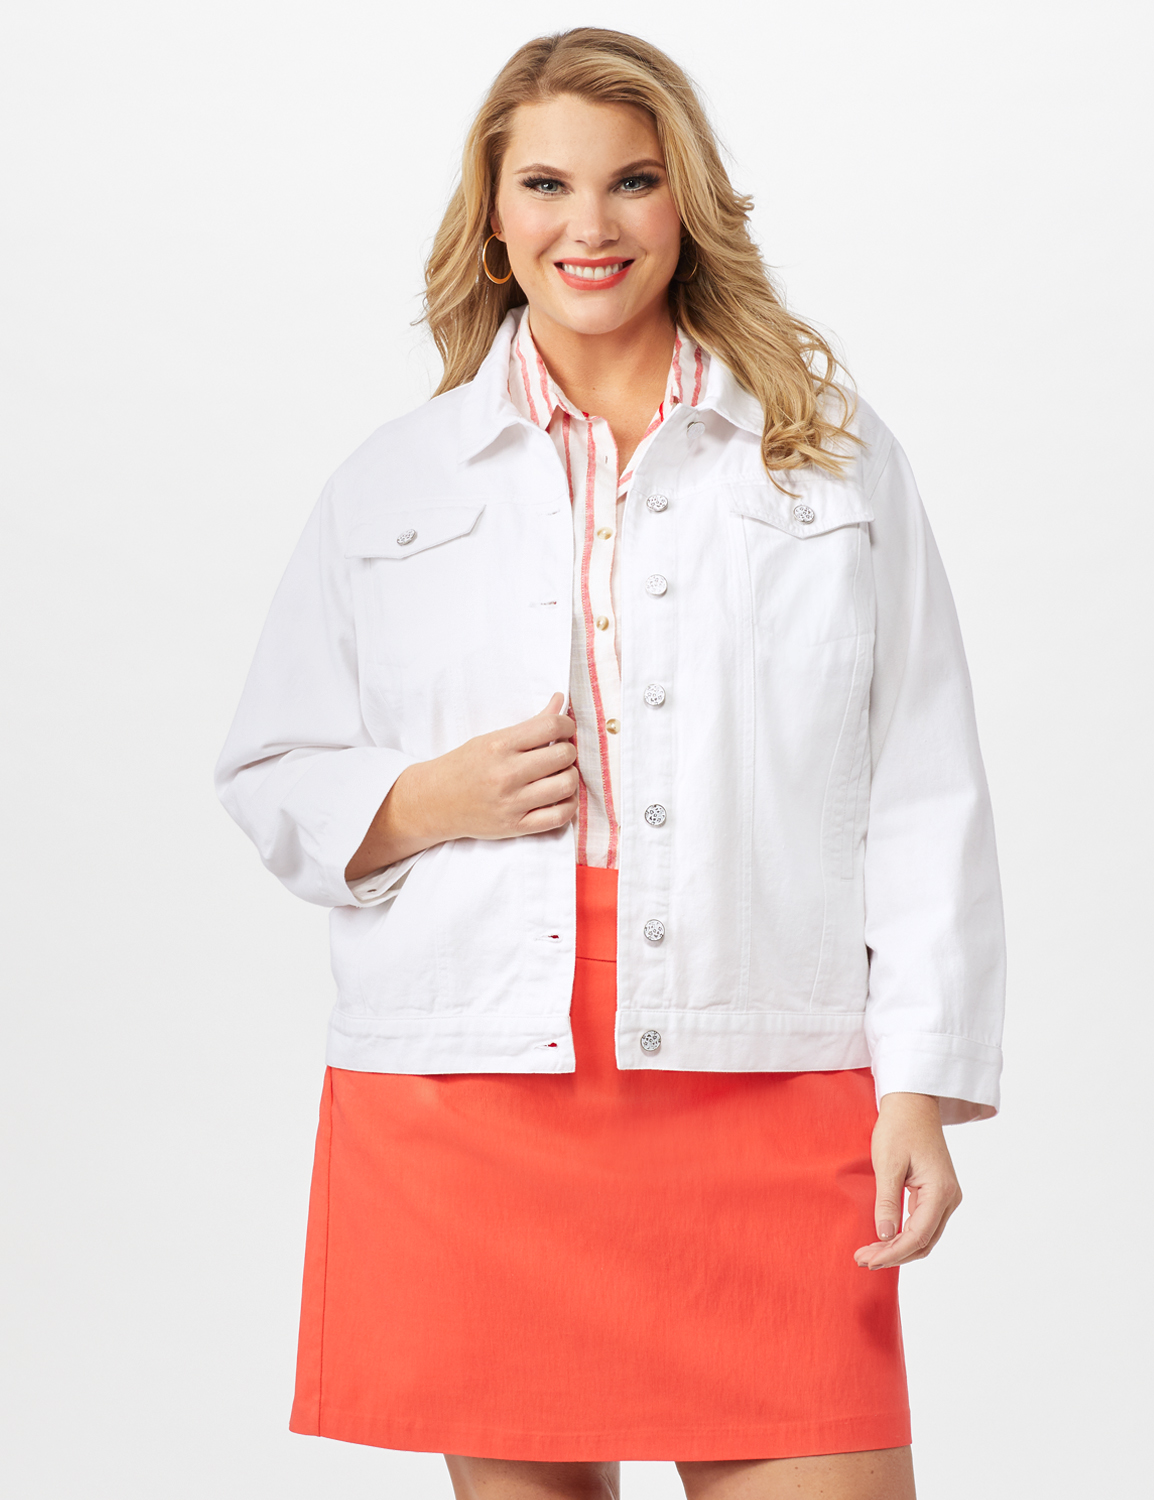 Jeans Jacket With 2 Chest Pockets , Button Front, Side Seams -White - Front